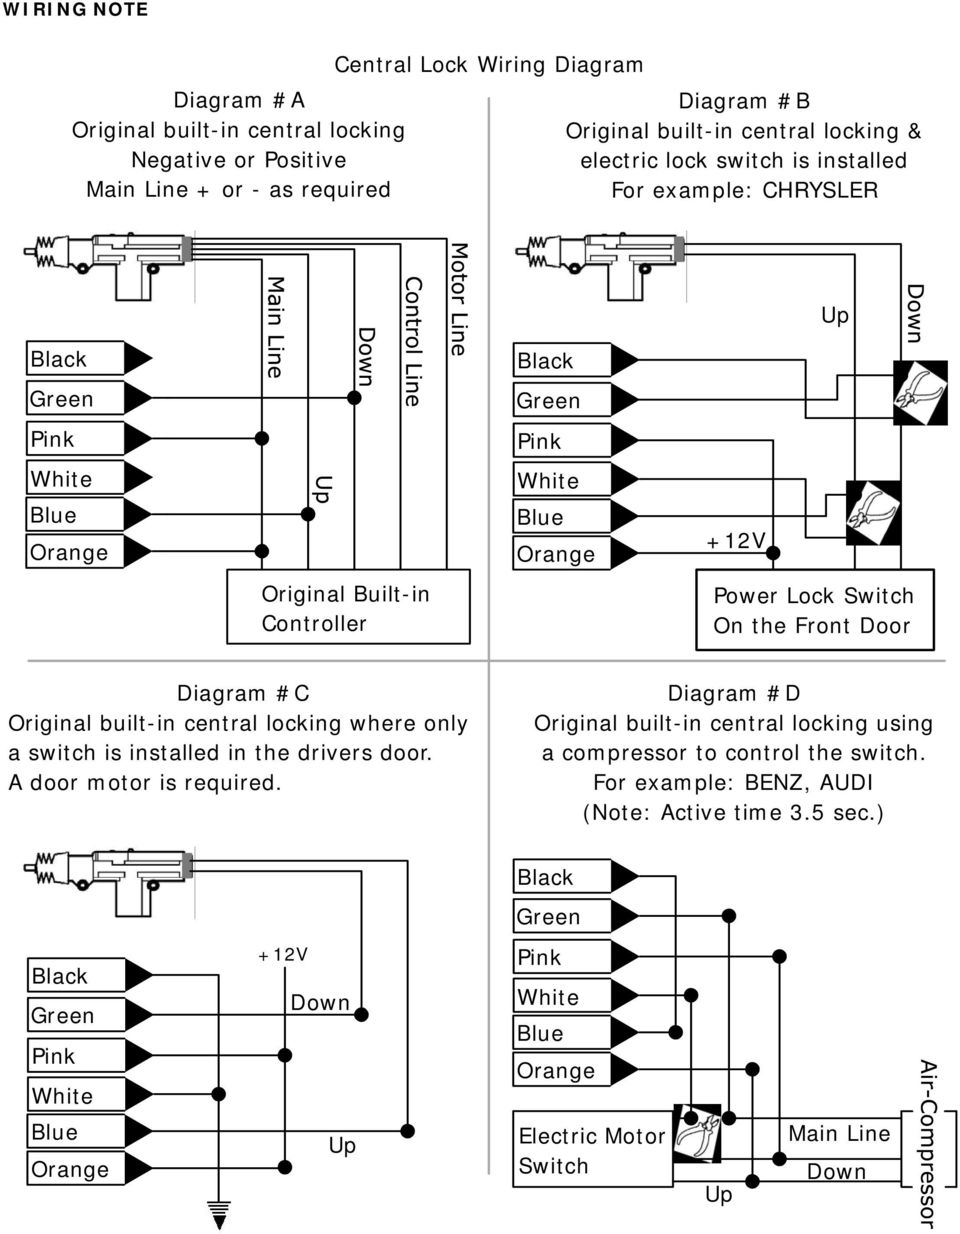 Sniper X1 Vehicle Security System Pdf Viper 5002 Wiring Diagram C Original Built In Central Locking Where Only A Switch Is Installed